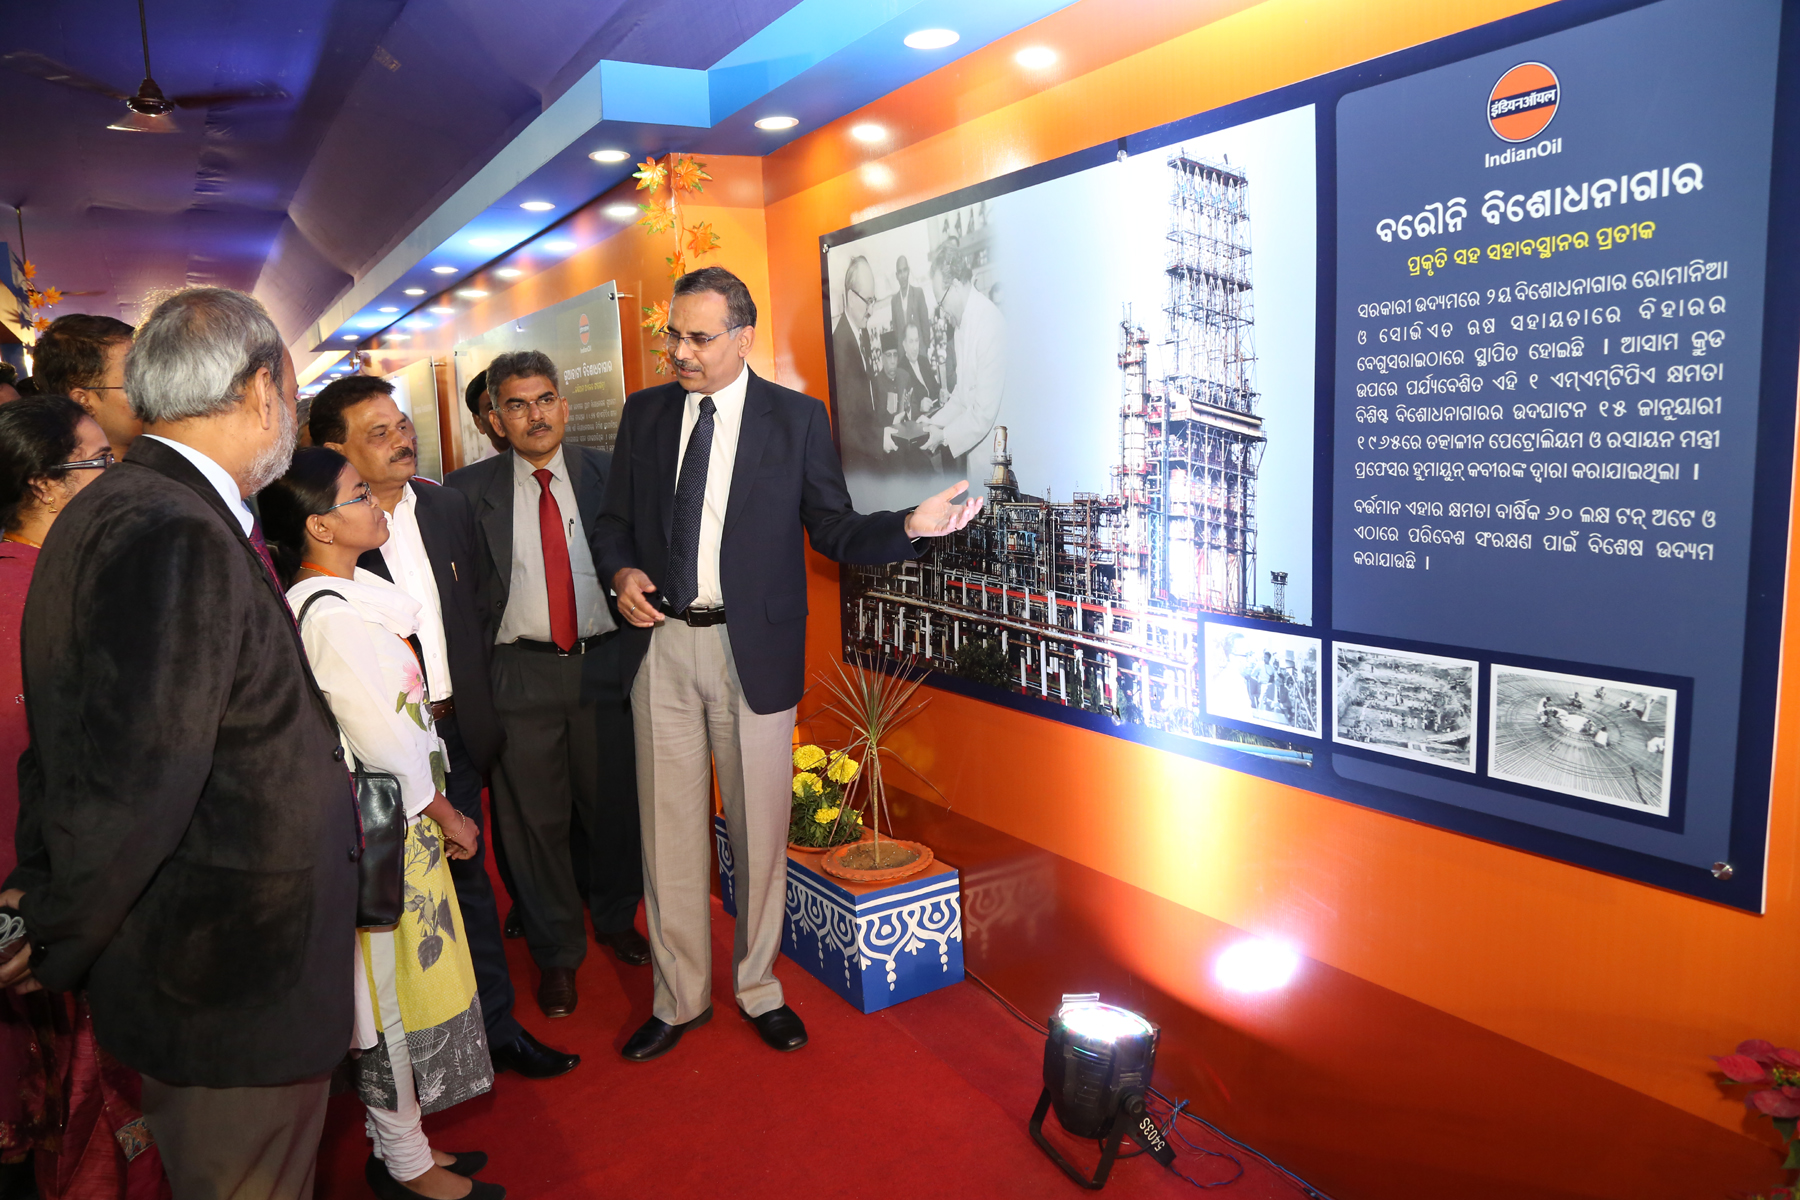 Mr. Sanjiv Singh, Director (Refineries), IndianOil at the Informative exhibition on Paradip Refinery at Saheed Nagar, Bhubaneswar - pic 2